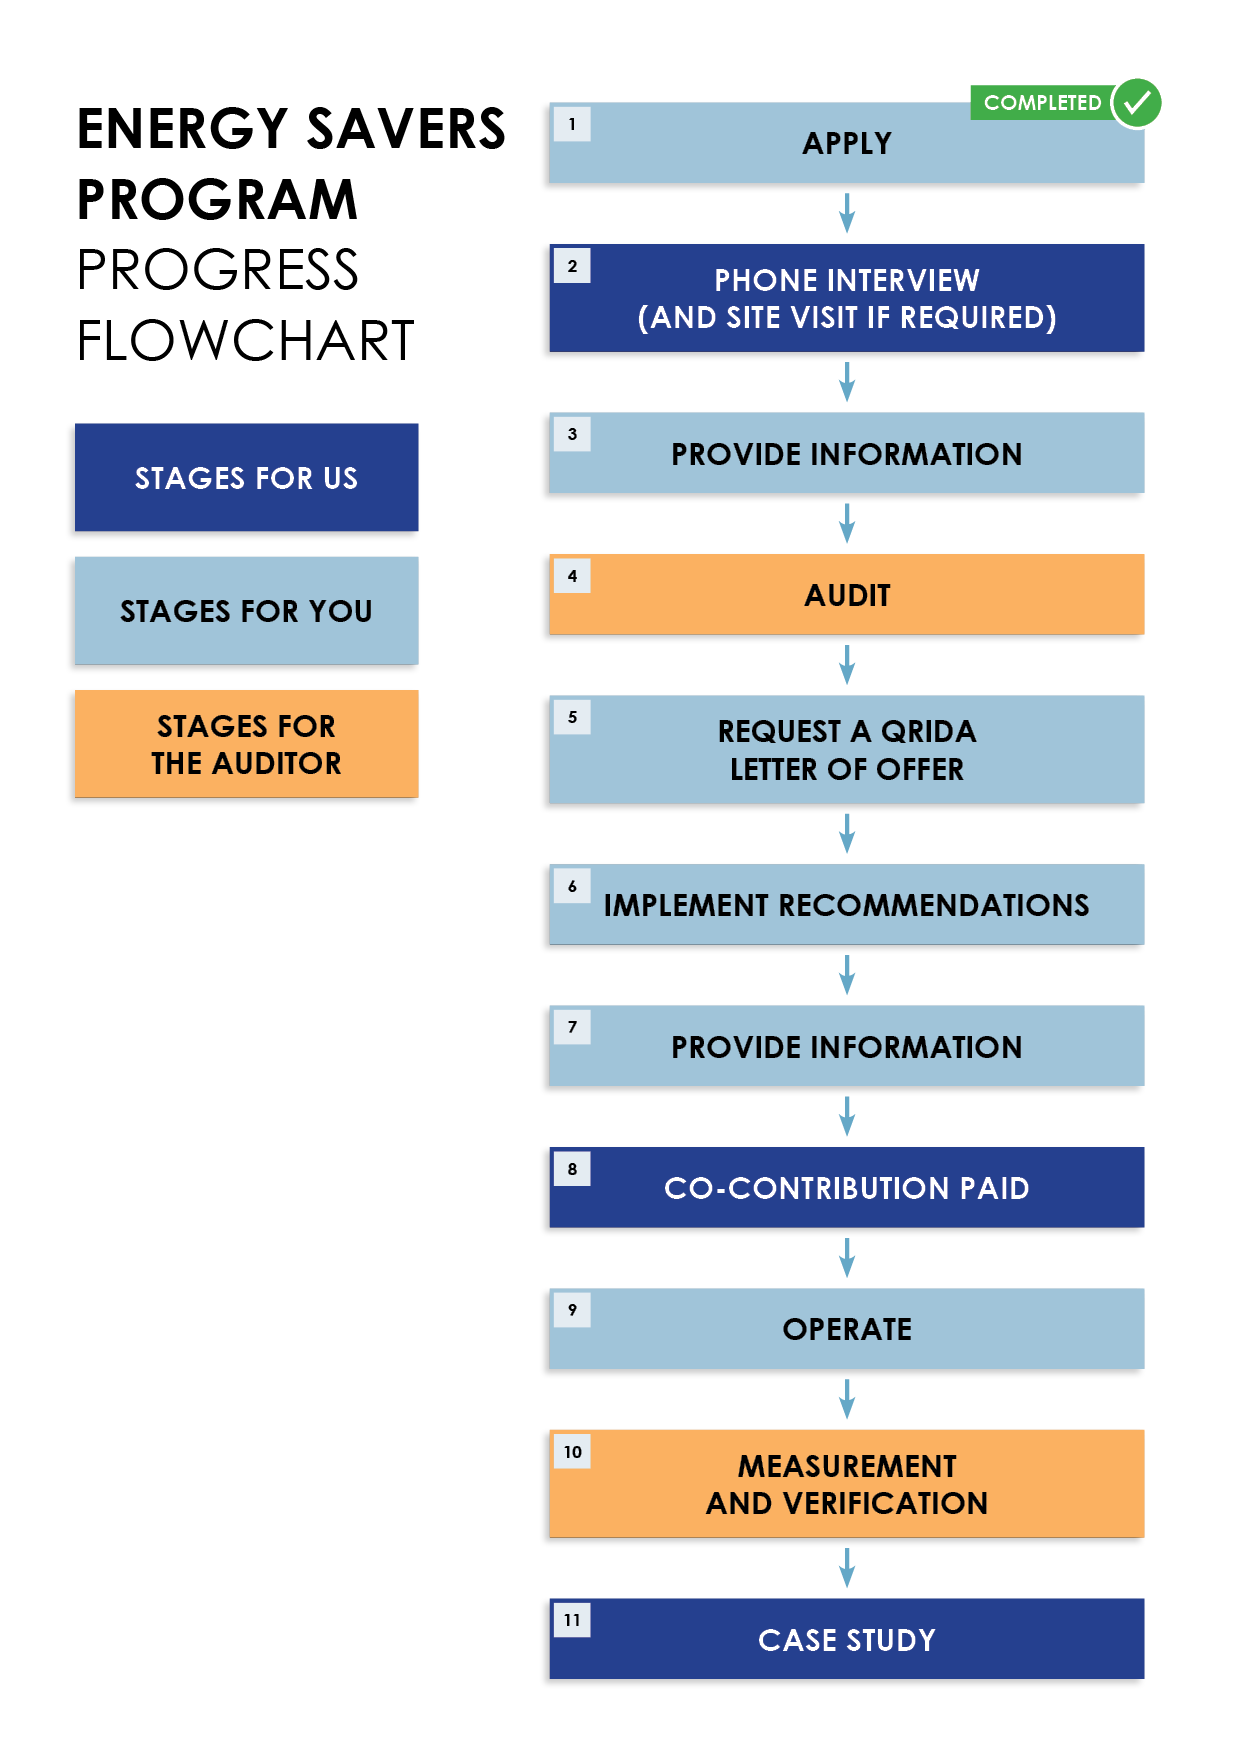 Energy Savers Flowchart